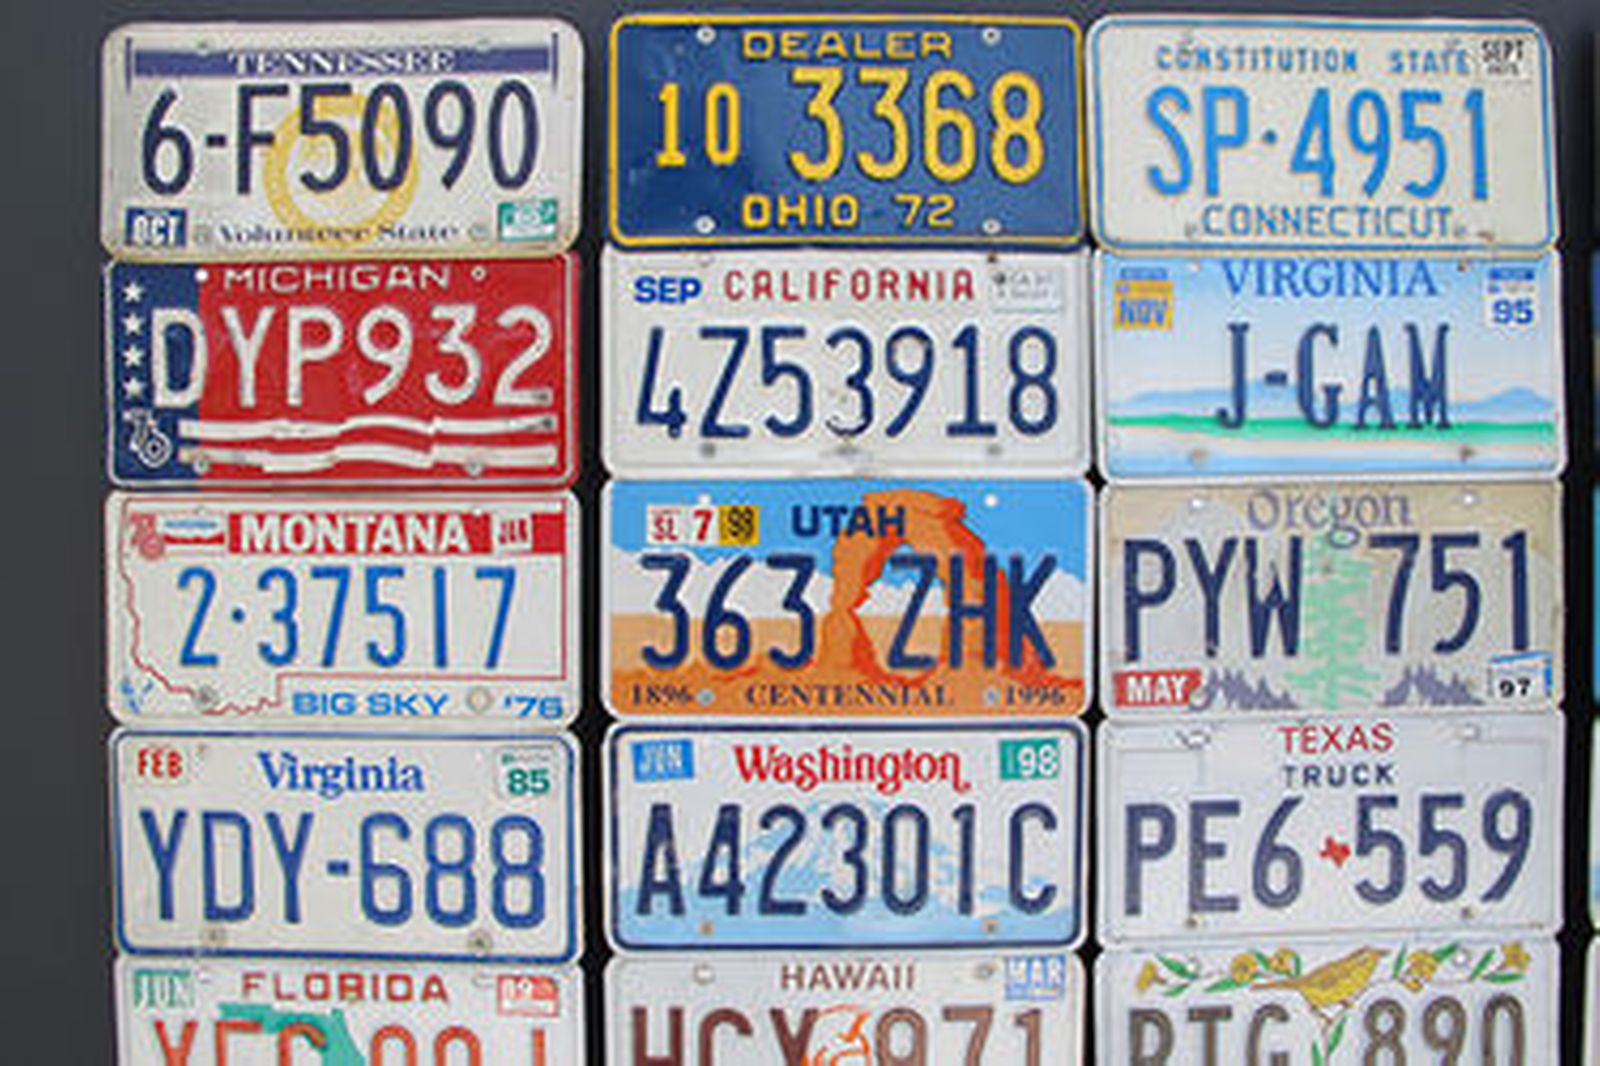 Online Auctions Canada >> Sold: Number Plates x 110 - USA and Canadian Number Plates Auctions - Lot D - Shannons